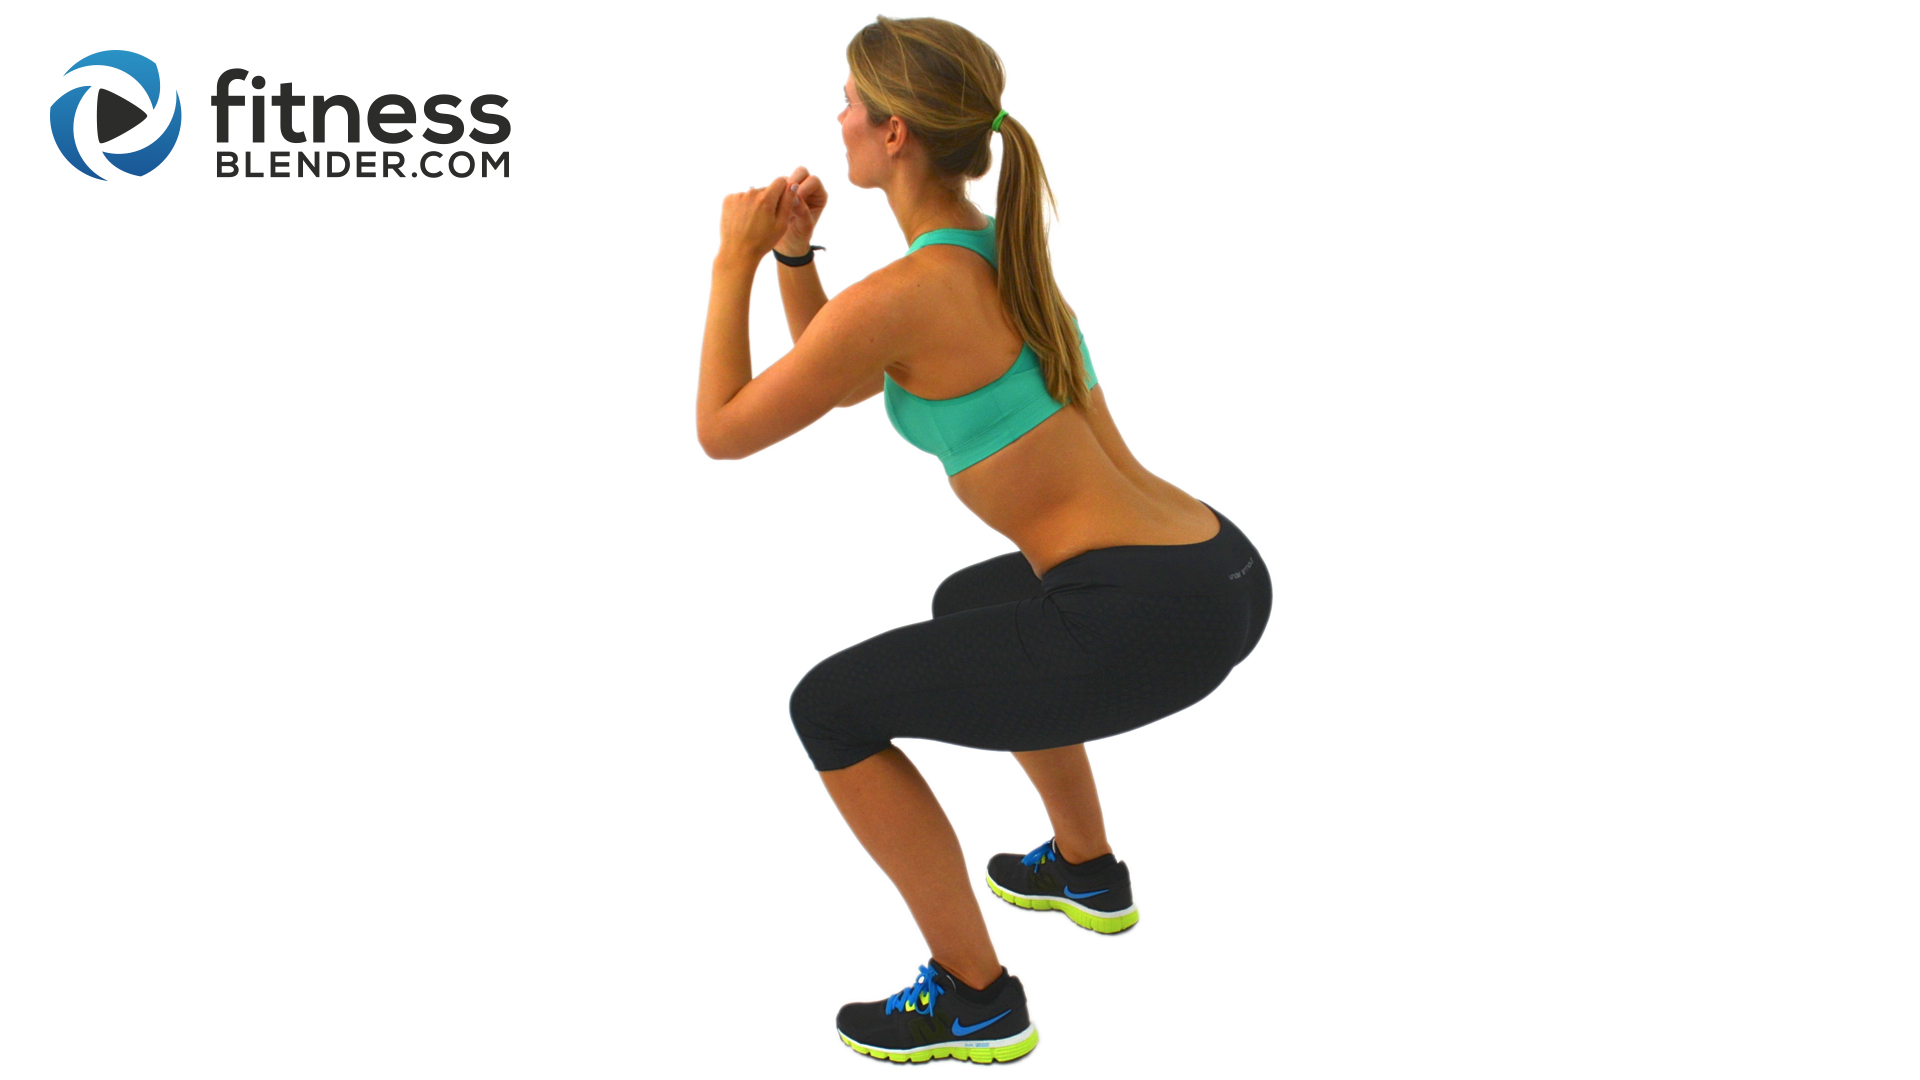 5 Minute Butt And Thigh Workout For A Bigger Butt Exercises To Lift And Tone Your Butt And Thighs Fitness Blender